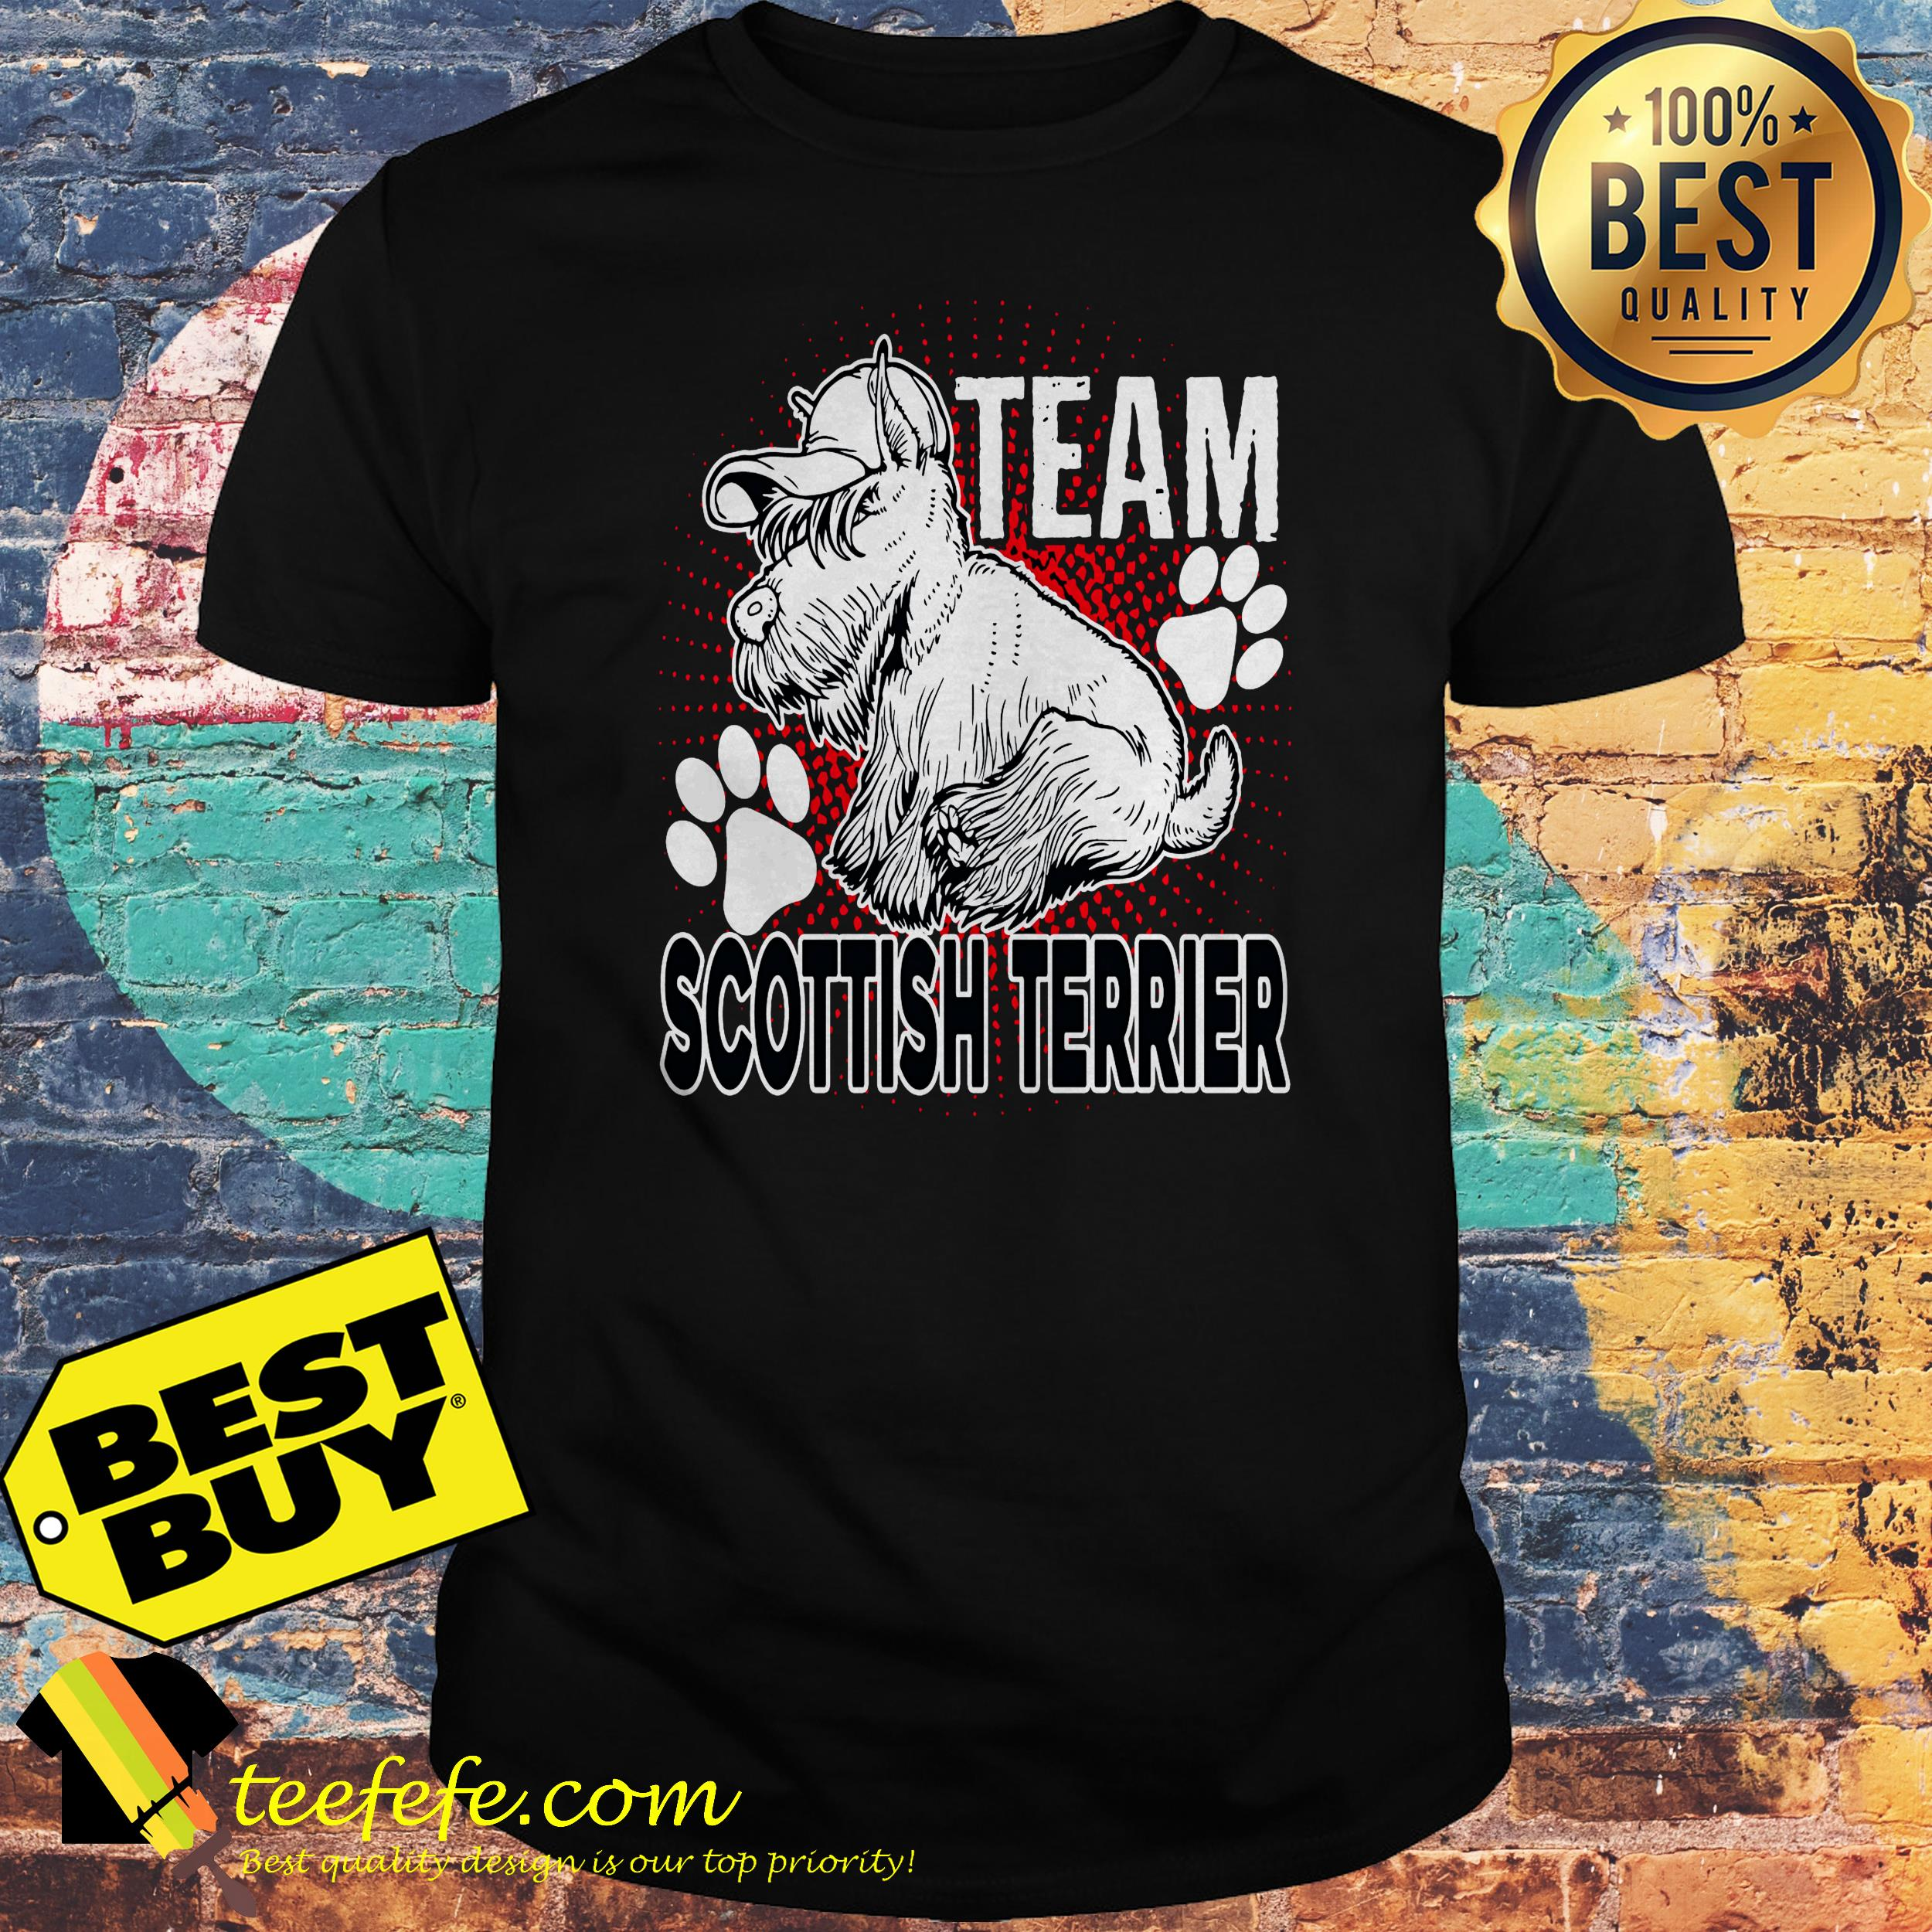 Team Scottish Terrier Shirt